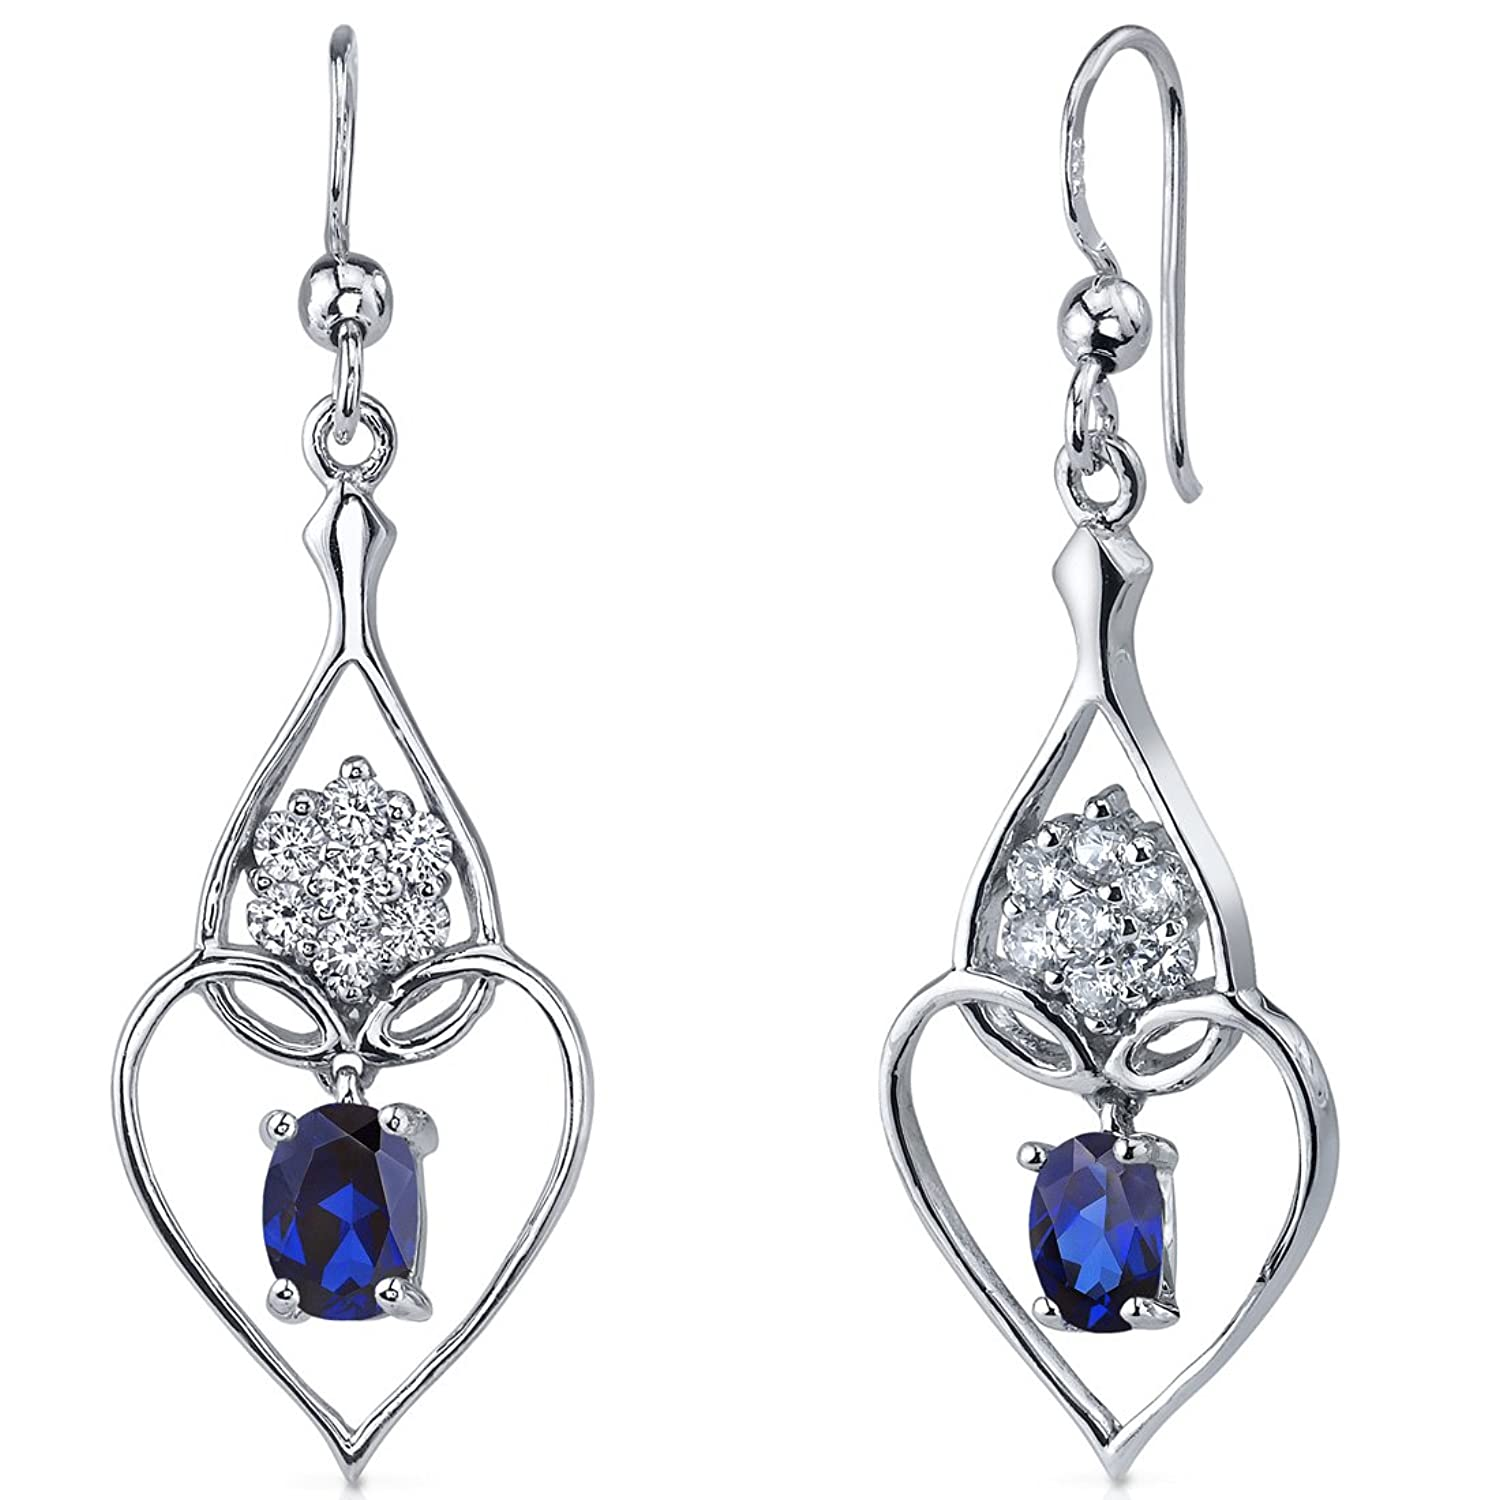 Created Sapphire Dangle Heart Earrings Sterling Silver Rhodium Nickel Finish 2.00 Carats Heart Design